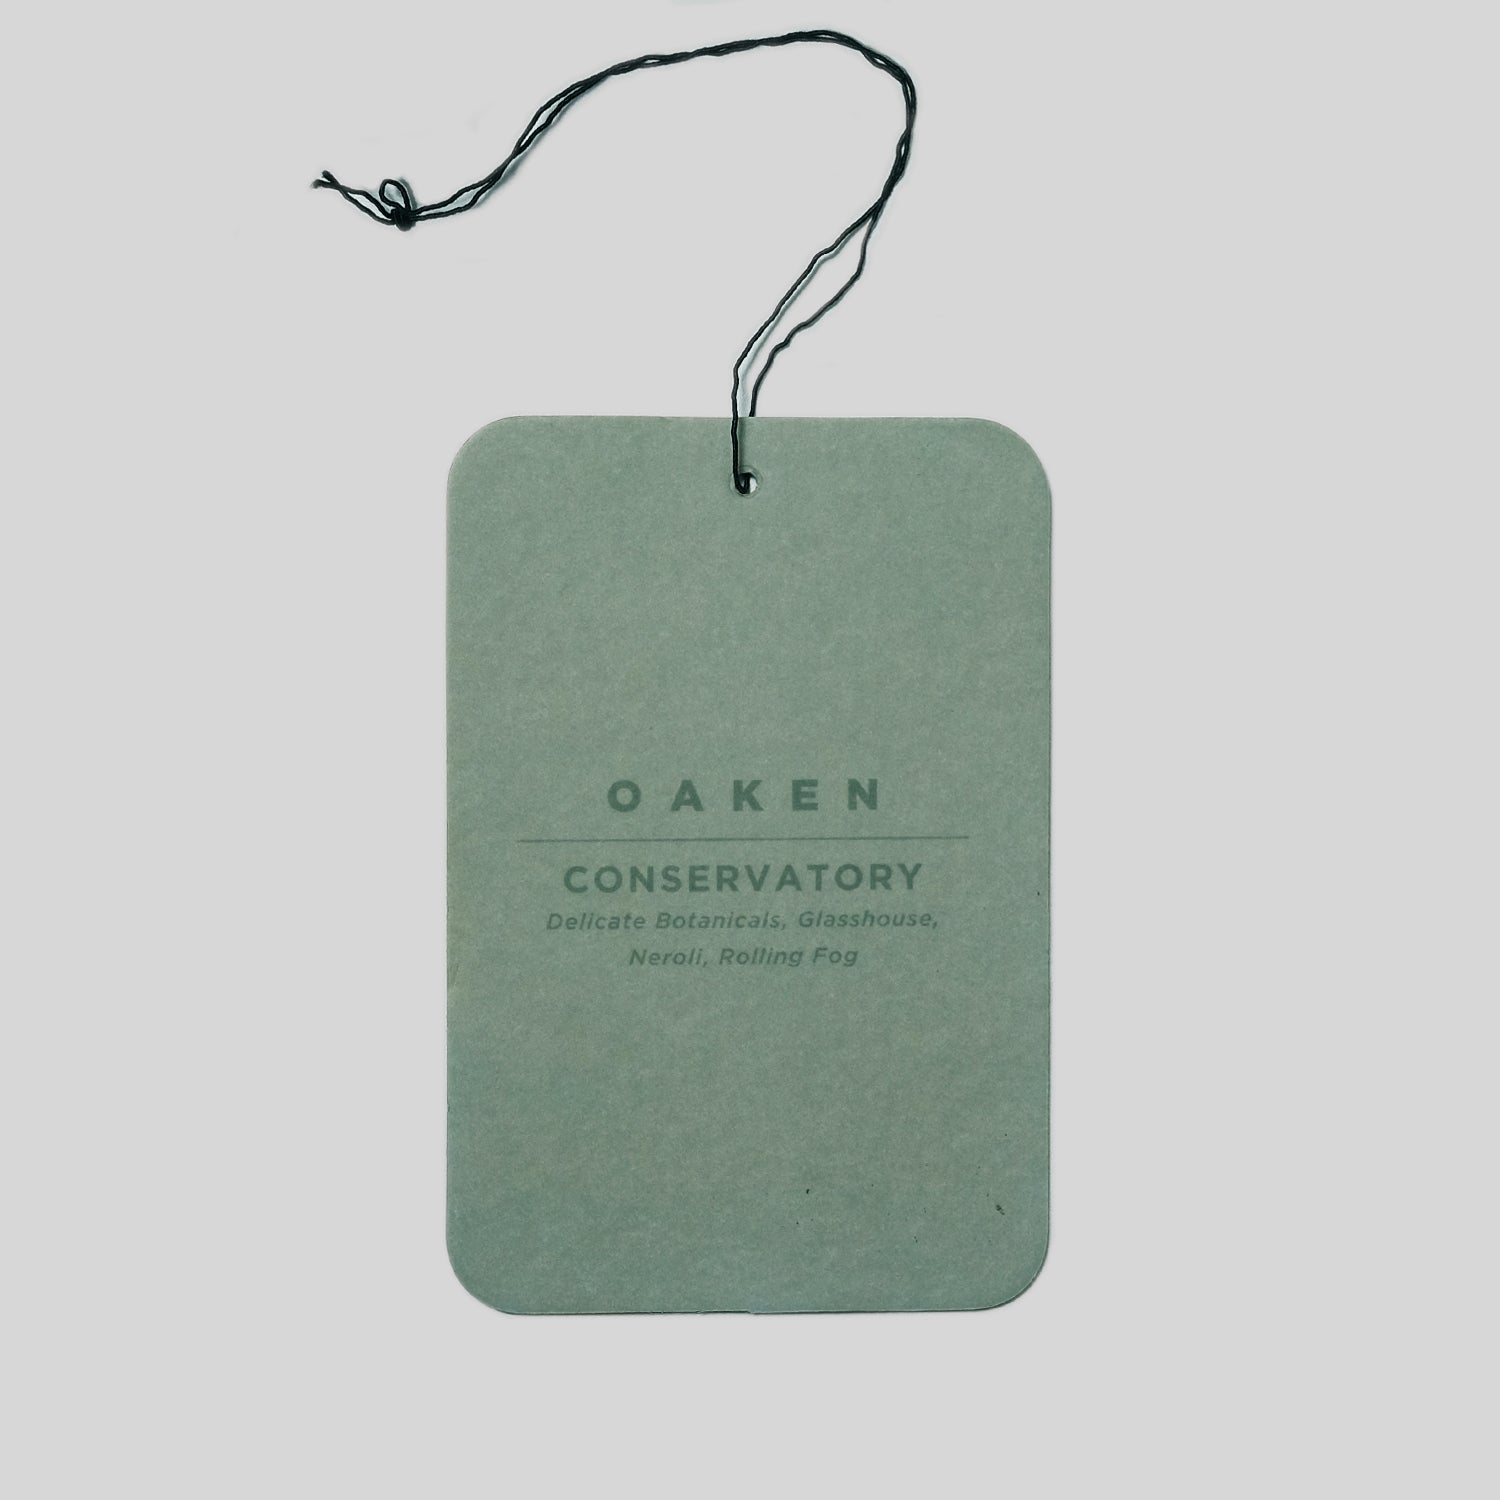 Scent Tag - Conservatory